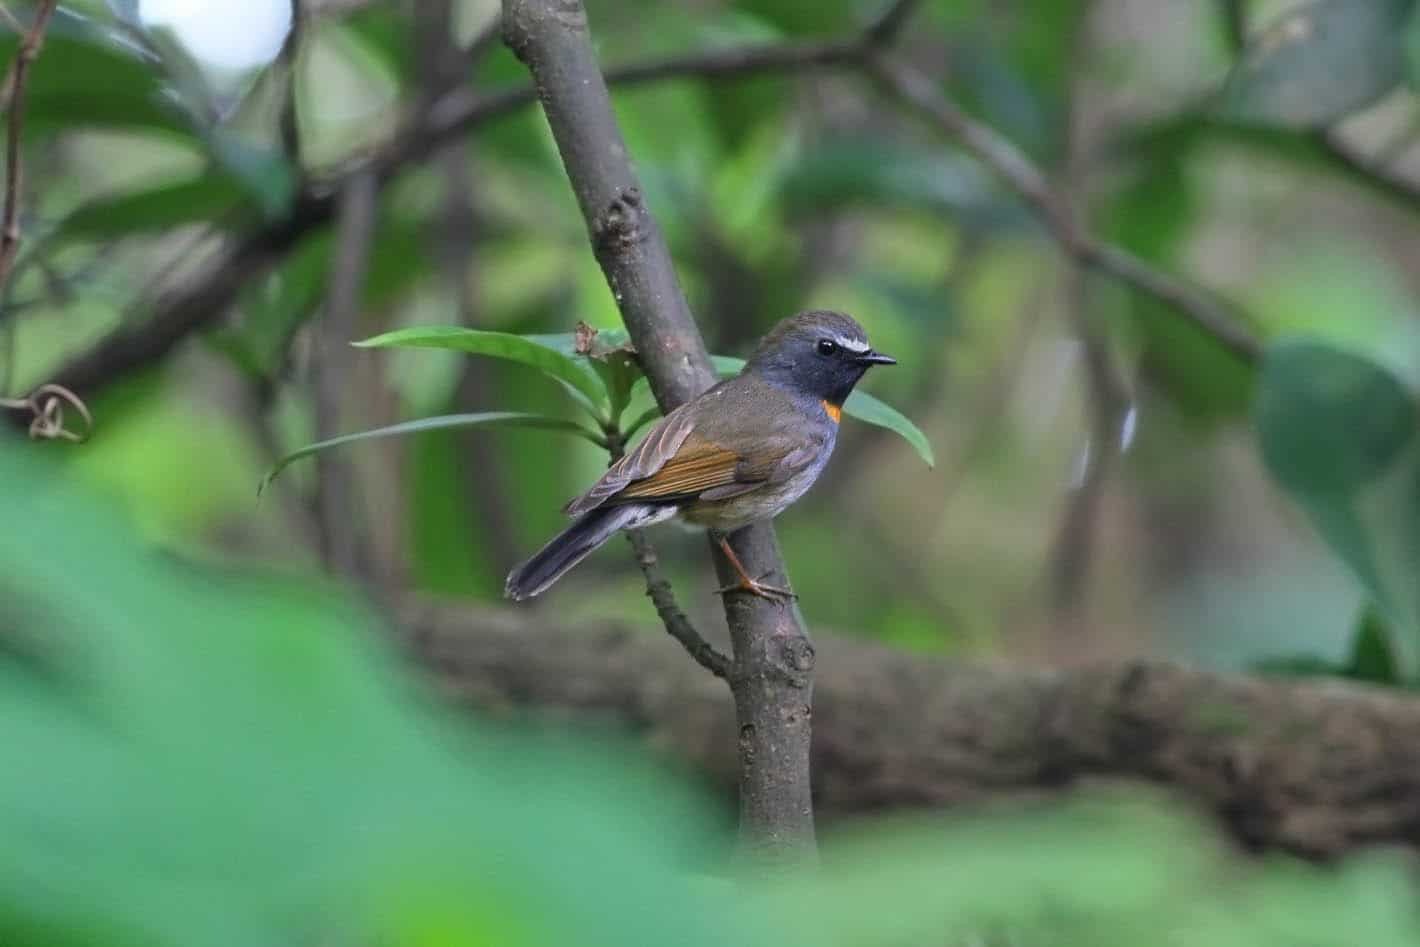 Image of a Rufous-gorgeted Flycatcher in Vietnam